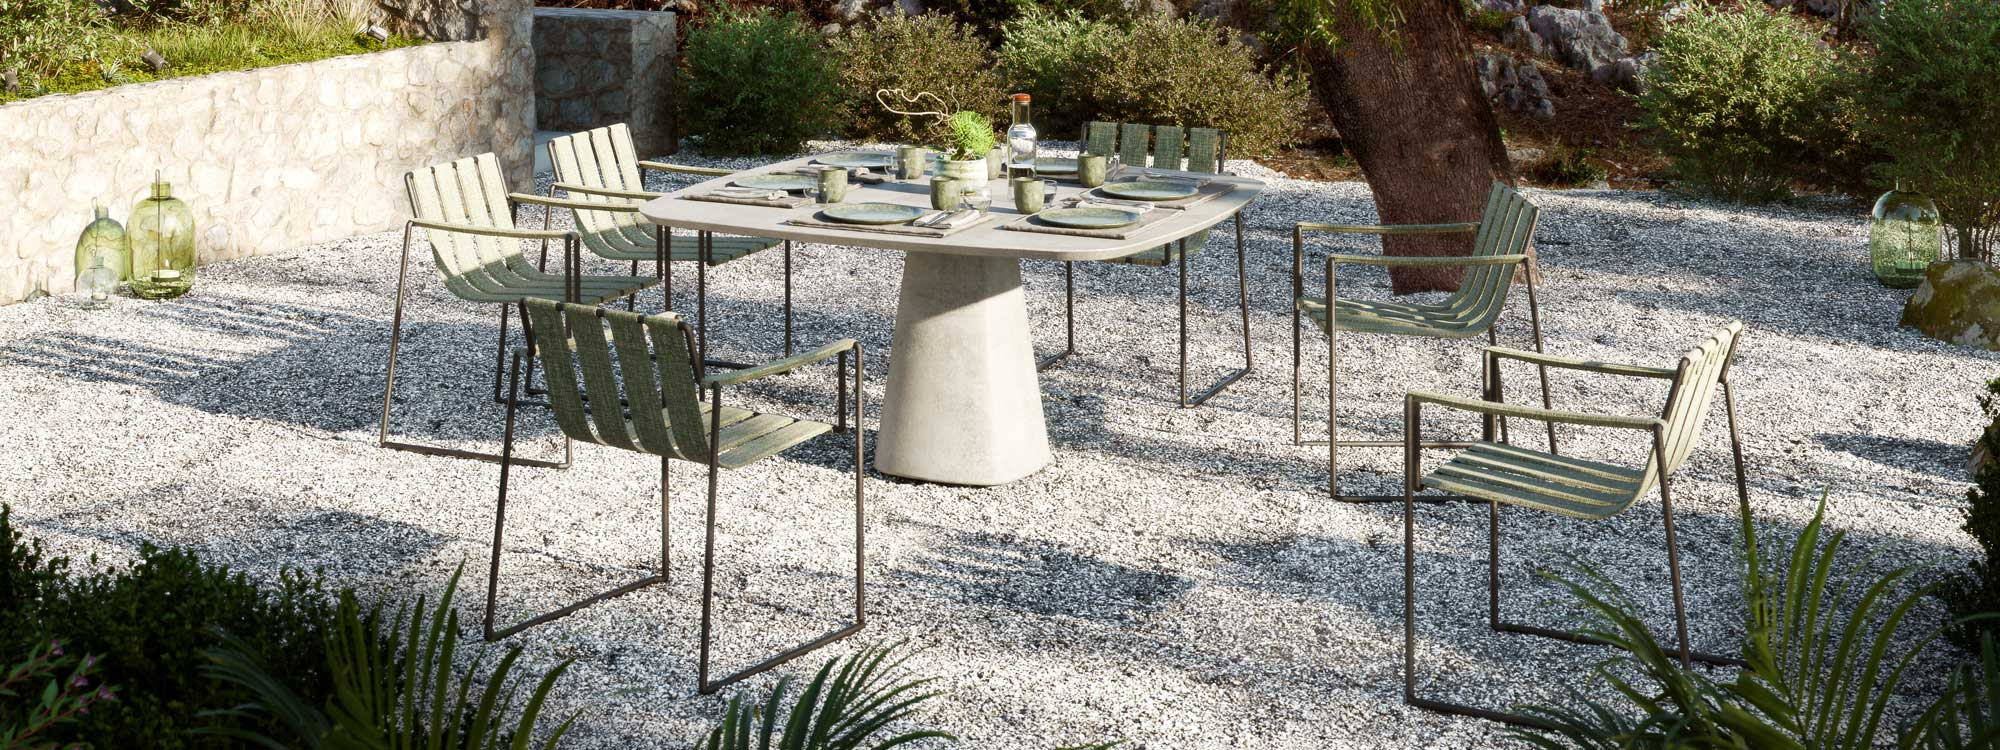 CONIX TABLE & Strappy GARDEN DINING CHAIR Is A MODERN Outdoor Carver Chair In MINIMALIST OUTDOOR FURNITURE Materials By ROYAL BOTANIA LUXURY Exterior Furniture